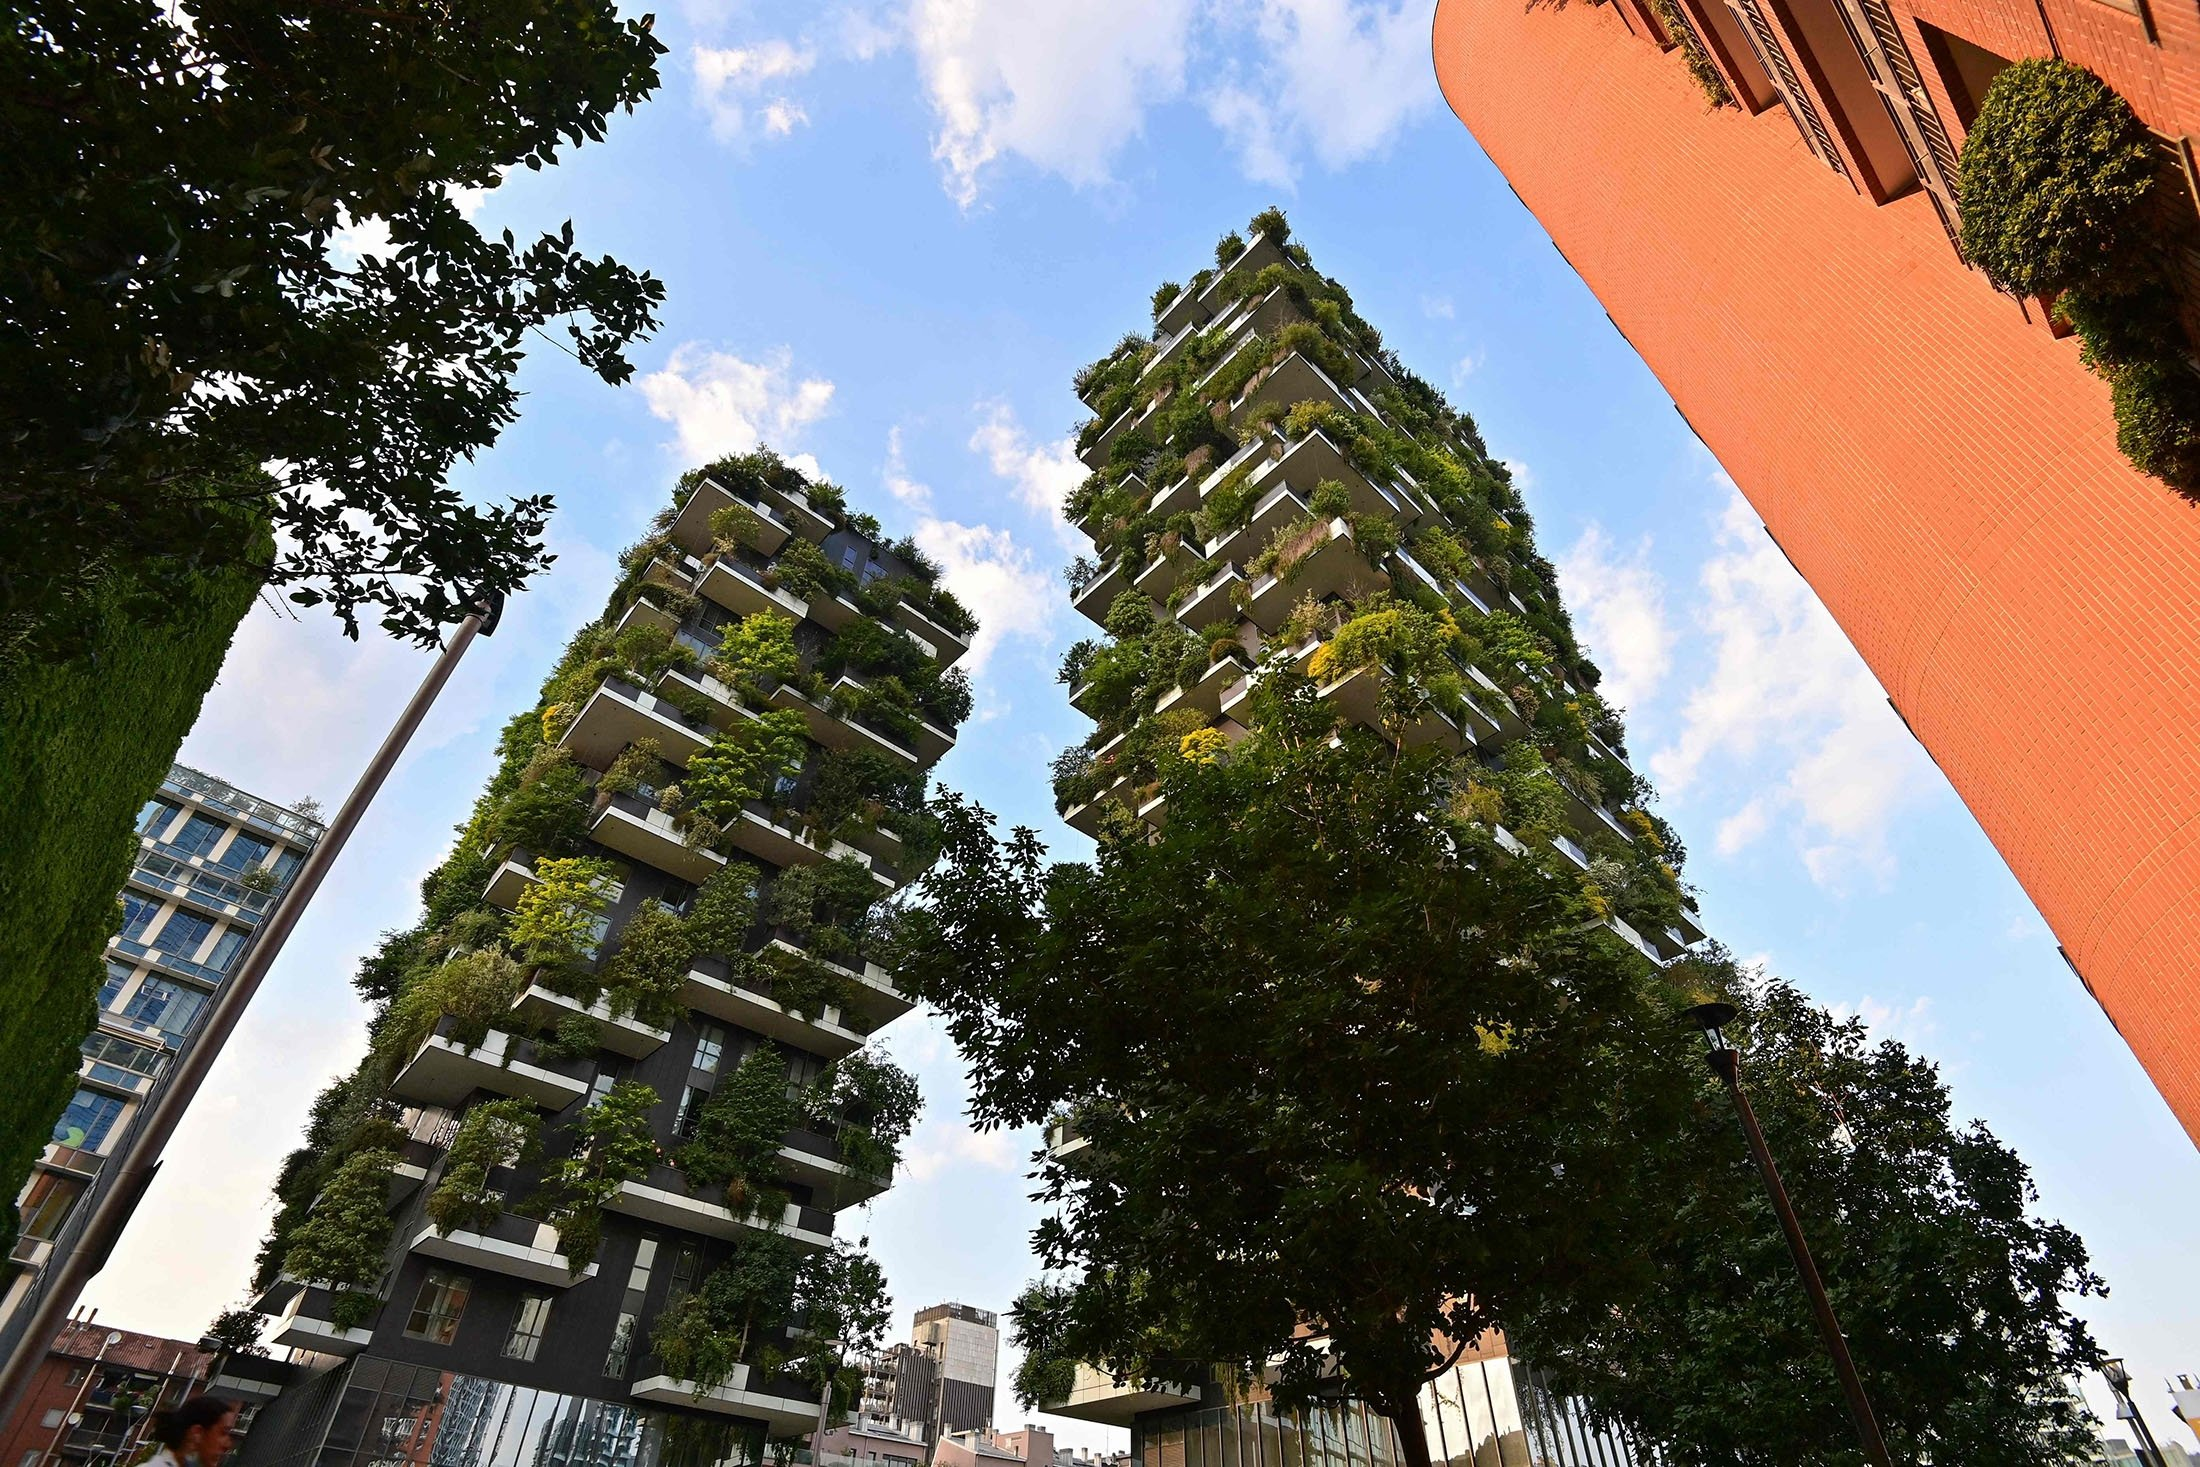 A detail of the balconies of the architectural complex called Vertical forest (Bosco Verticale) designed by Studio Boeri can be seen in the modern district of Porta Nuova in Milan, Italy, June 2, 2021. (AFP Photo)